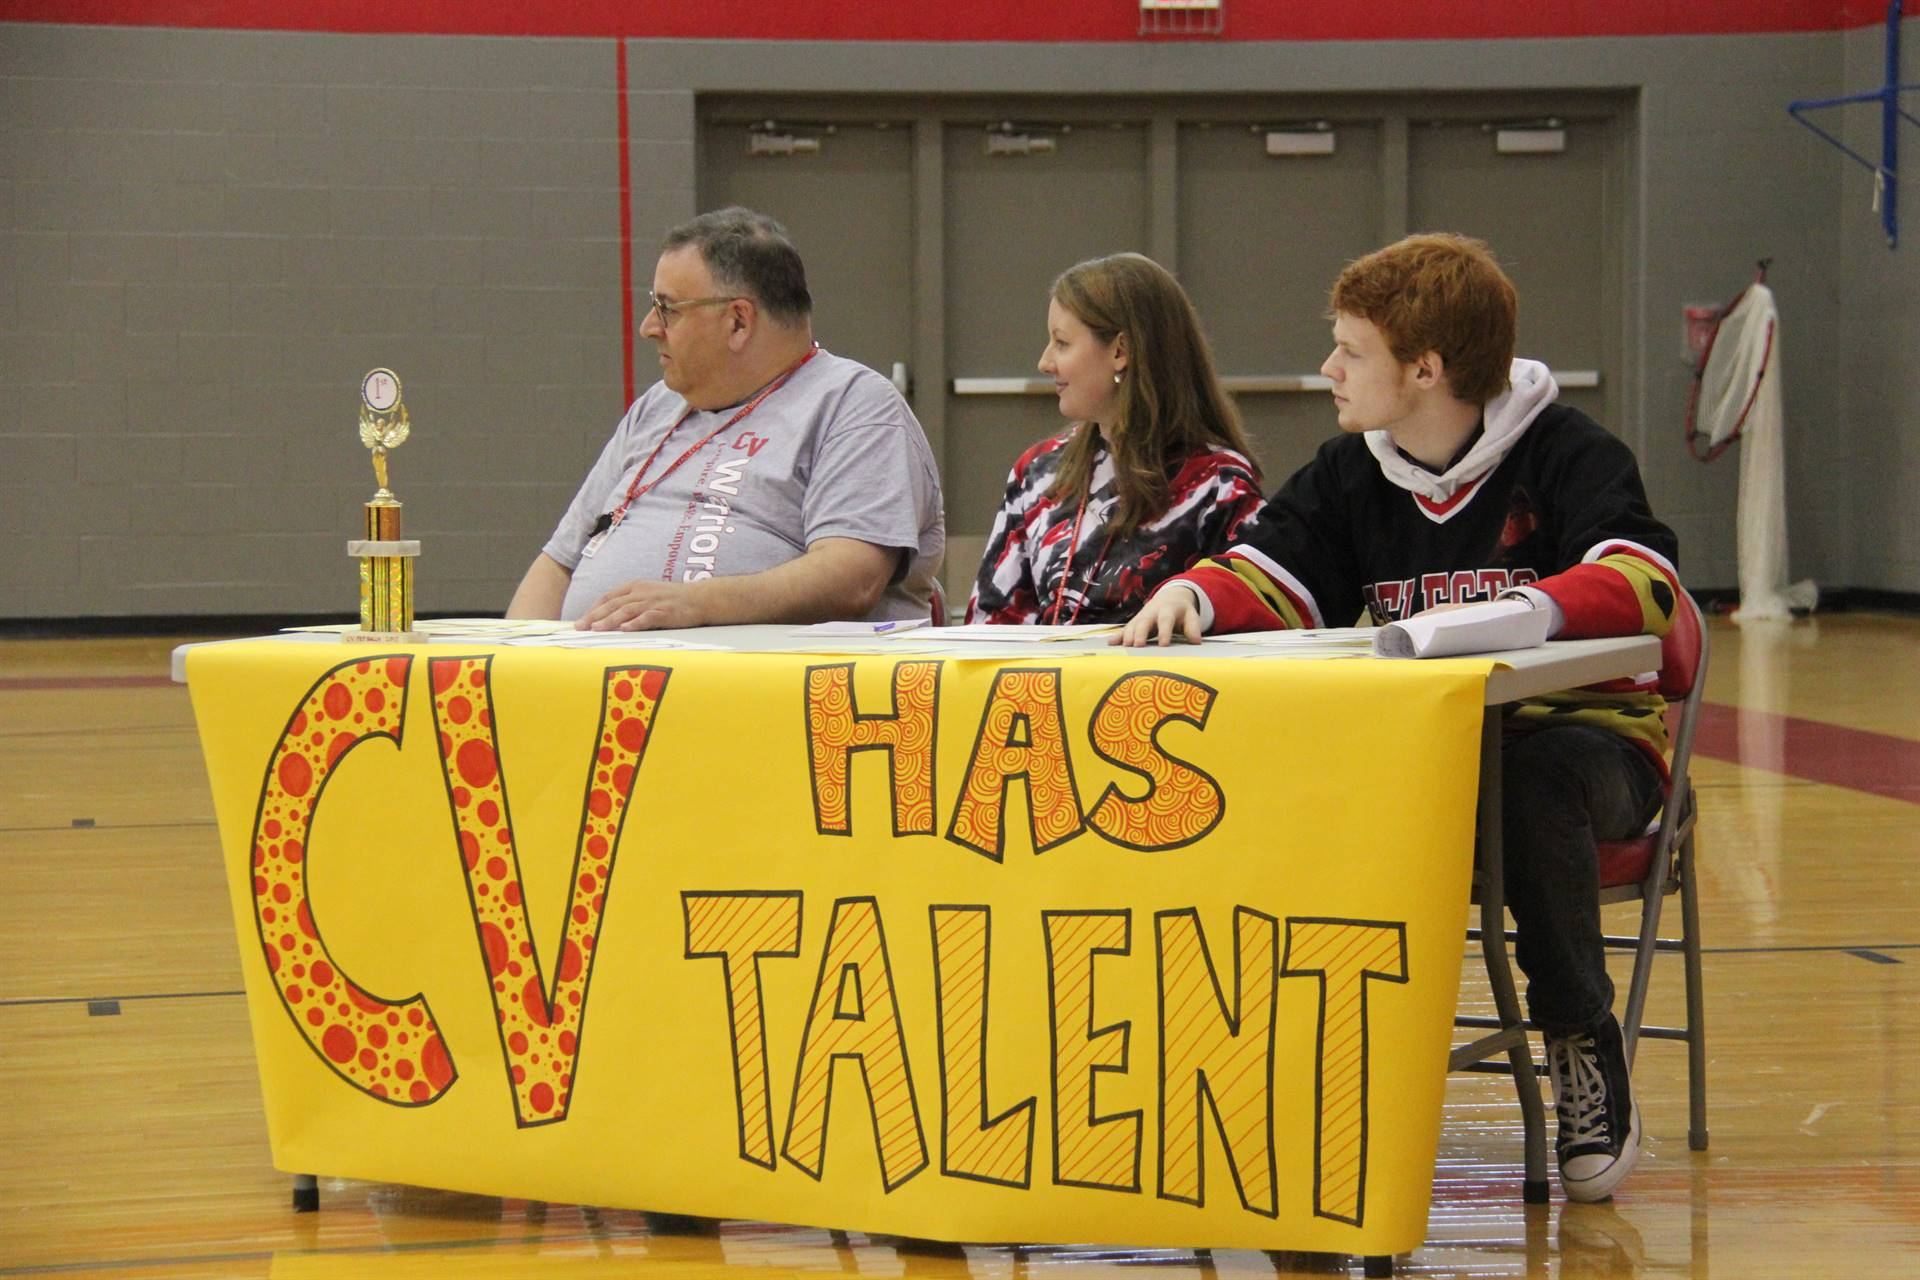 c v has talent judges watching at high school pep rally